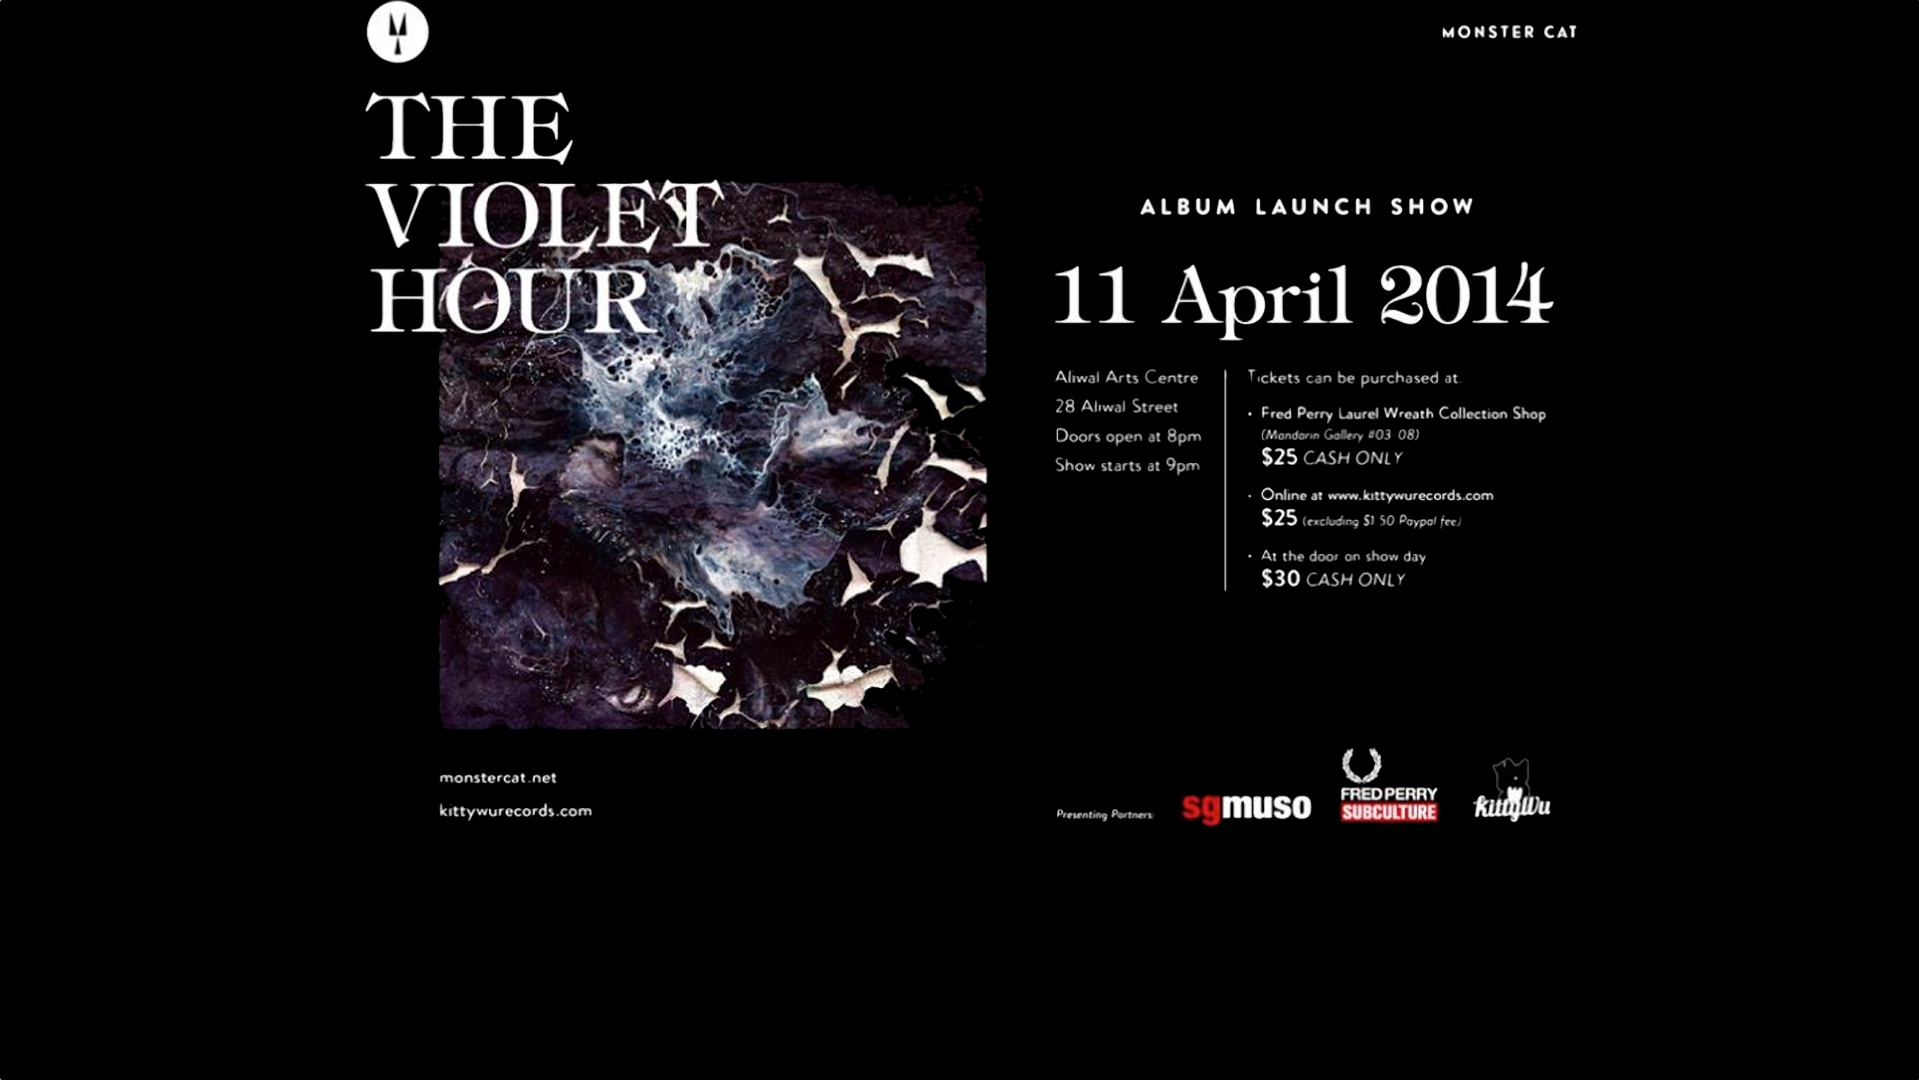 THE VIOLET HOUR Launch Show